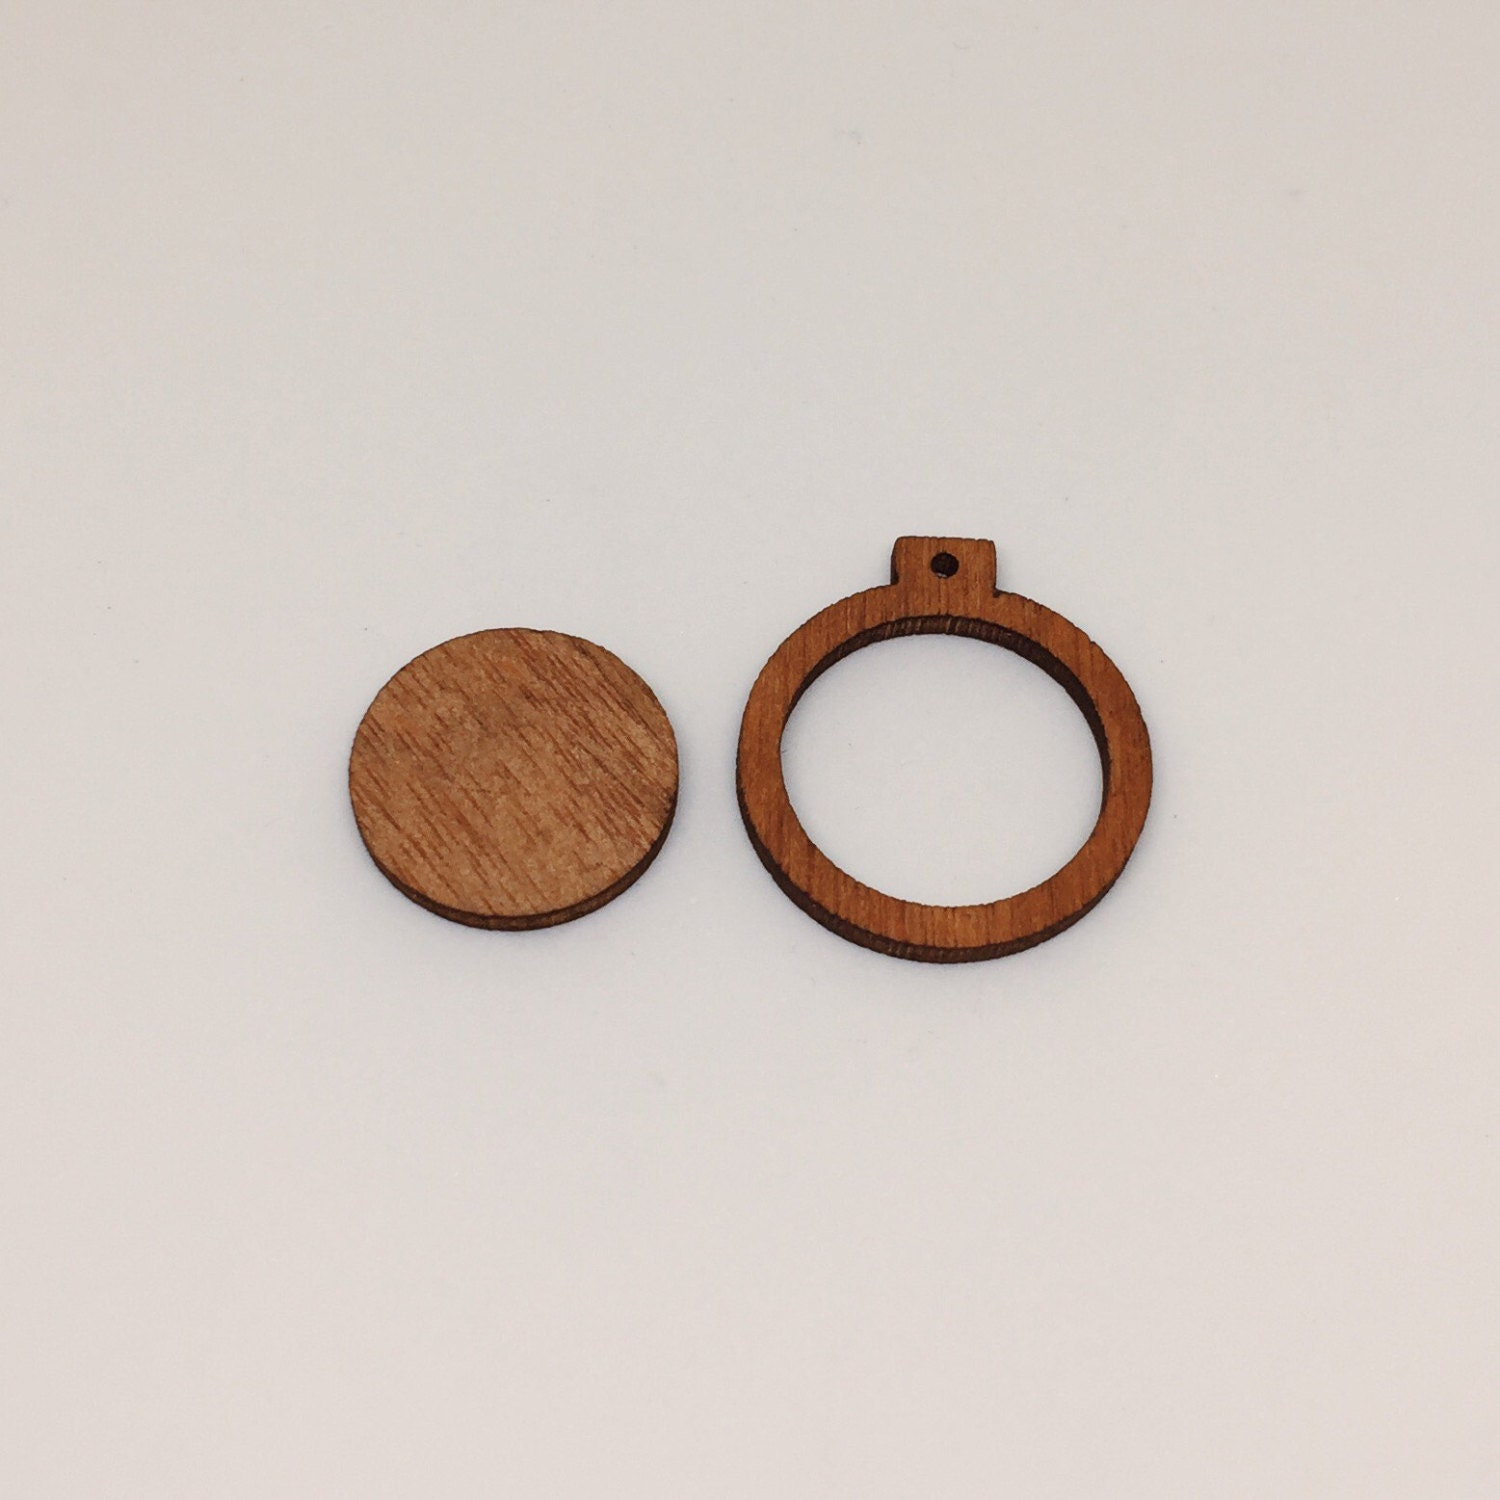 Mini wood embroidery hoop frame for diy pendant xmas ornaments